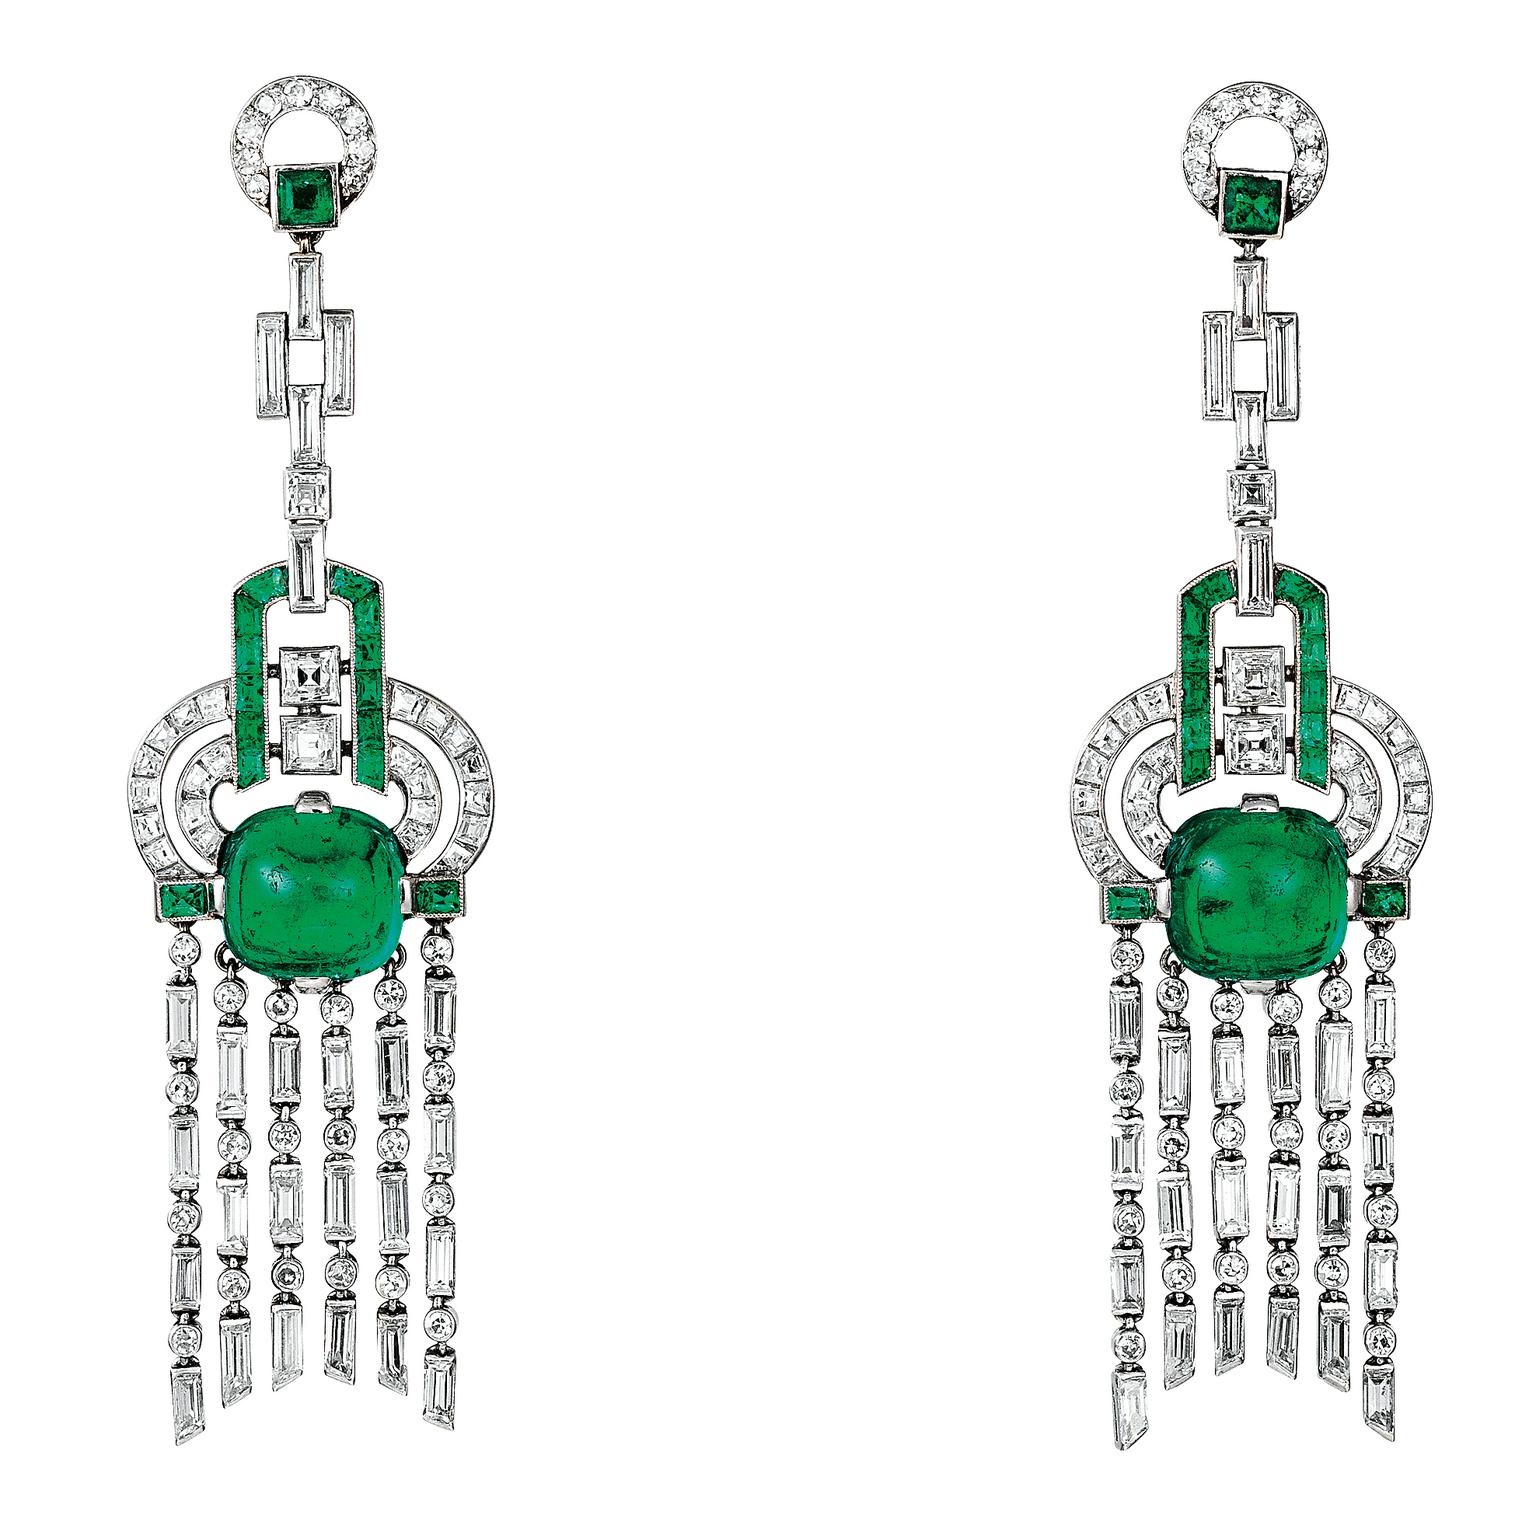 Van Cleef & Arpels Pampilles earrings